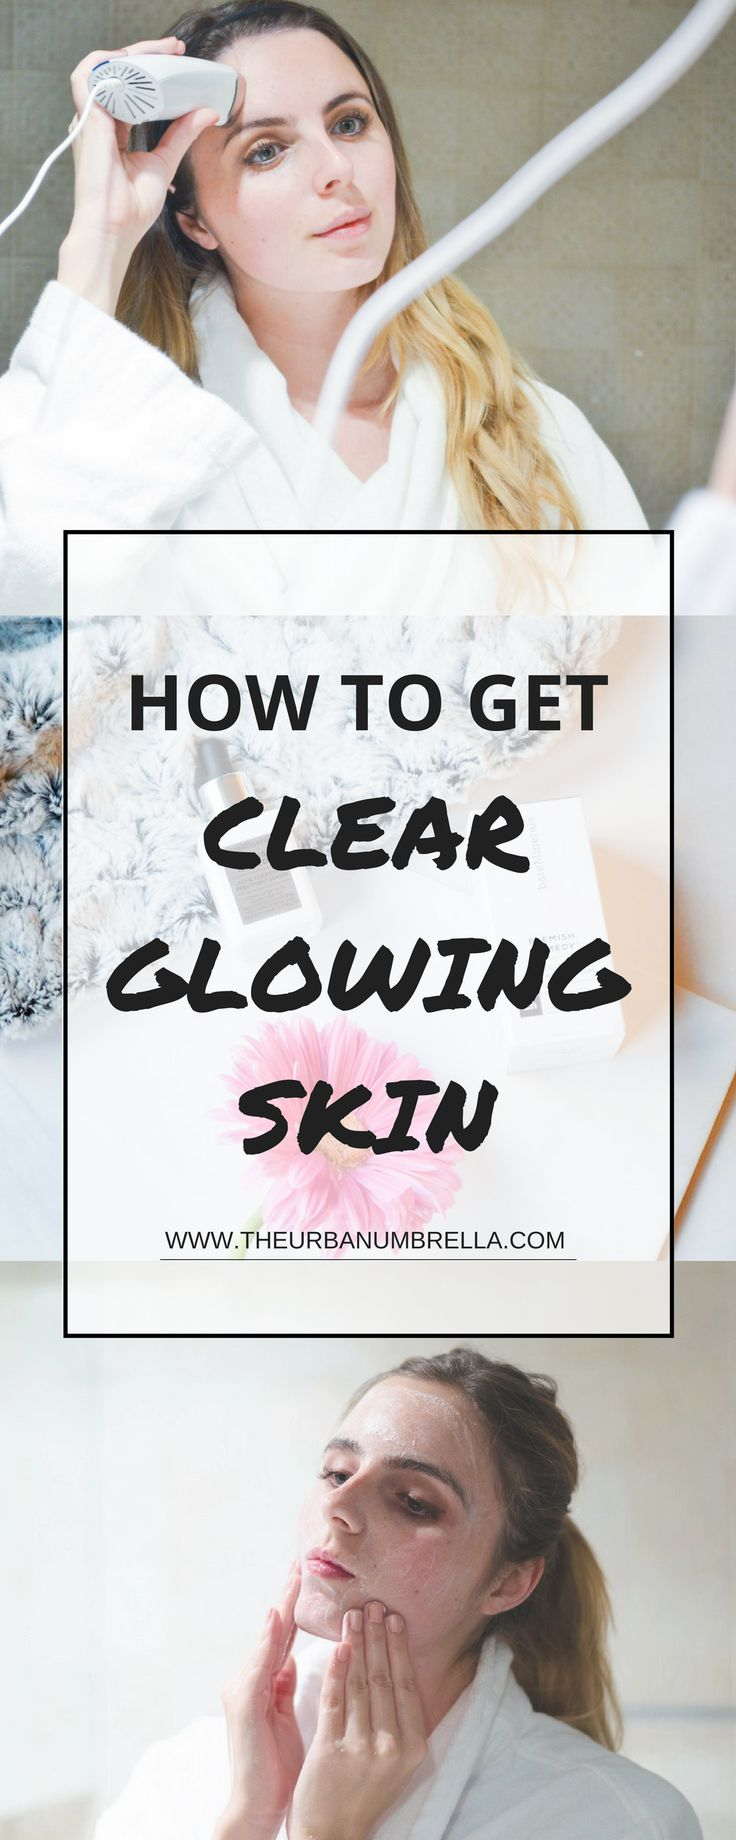 Do you struggle with acne, dull or tired looking skin? Than this is the guide for you! Learn how to reduce acne, and get glowing skin FAST with these tricks, tools, and products.